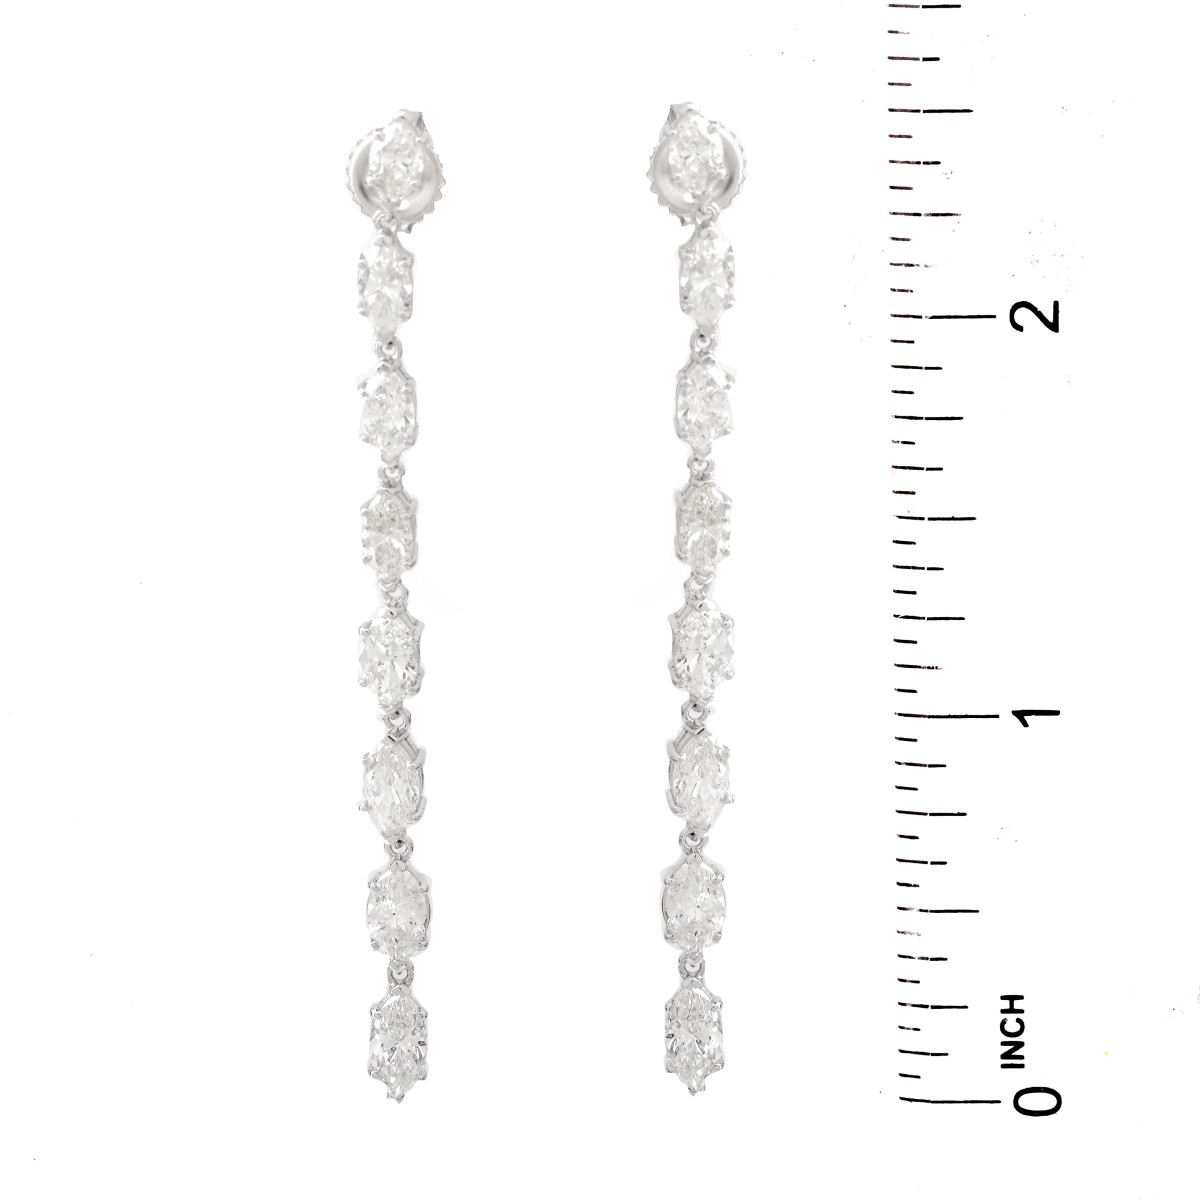 6.0ct Diamond and 14K Gold Earrings